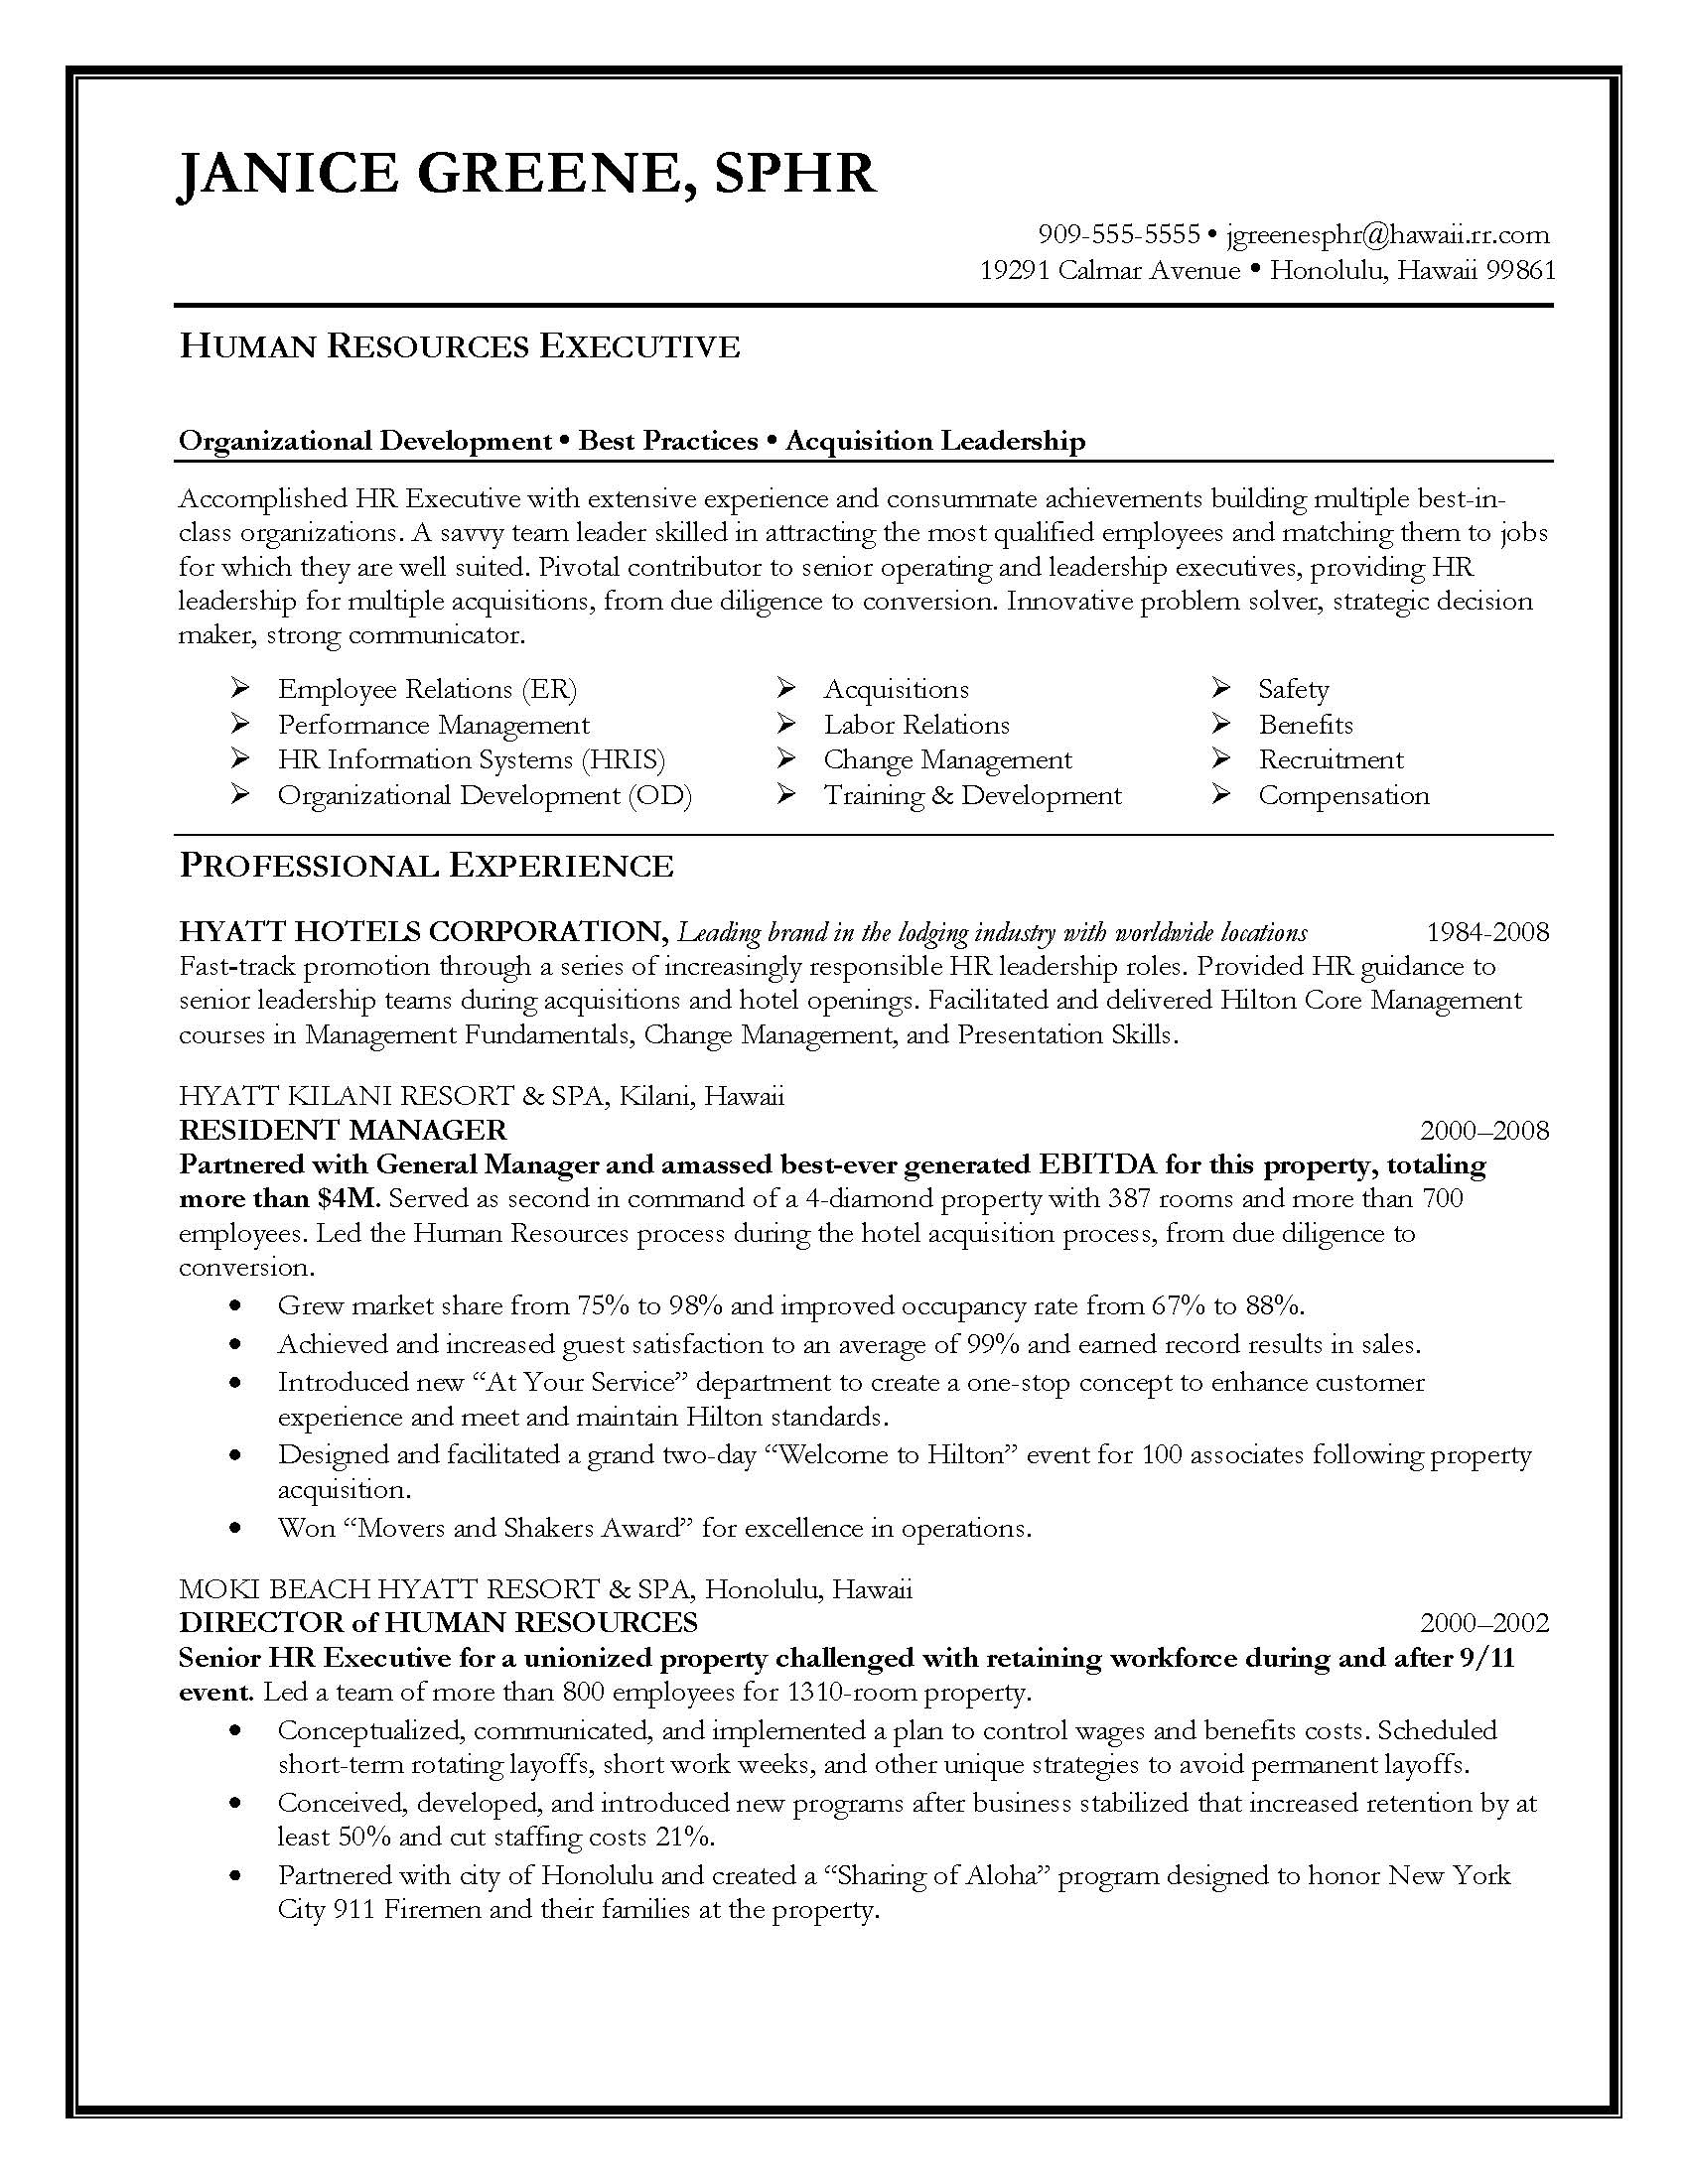 public relations executive resume example page sample board public relations executive resume example page sample resume samples elite writing human resources executive resume sample